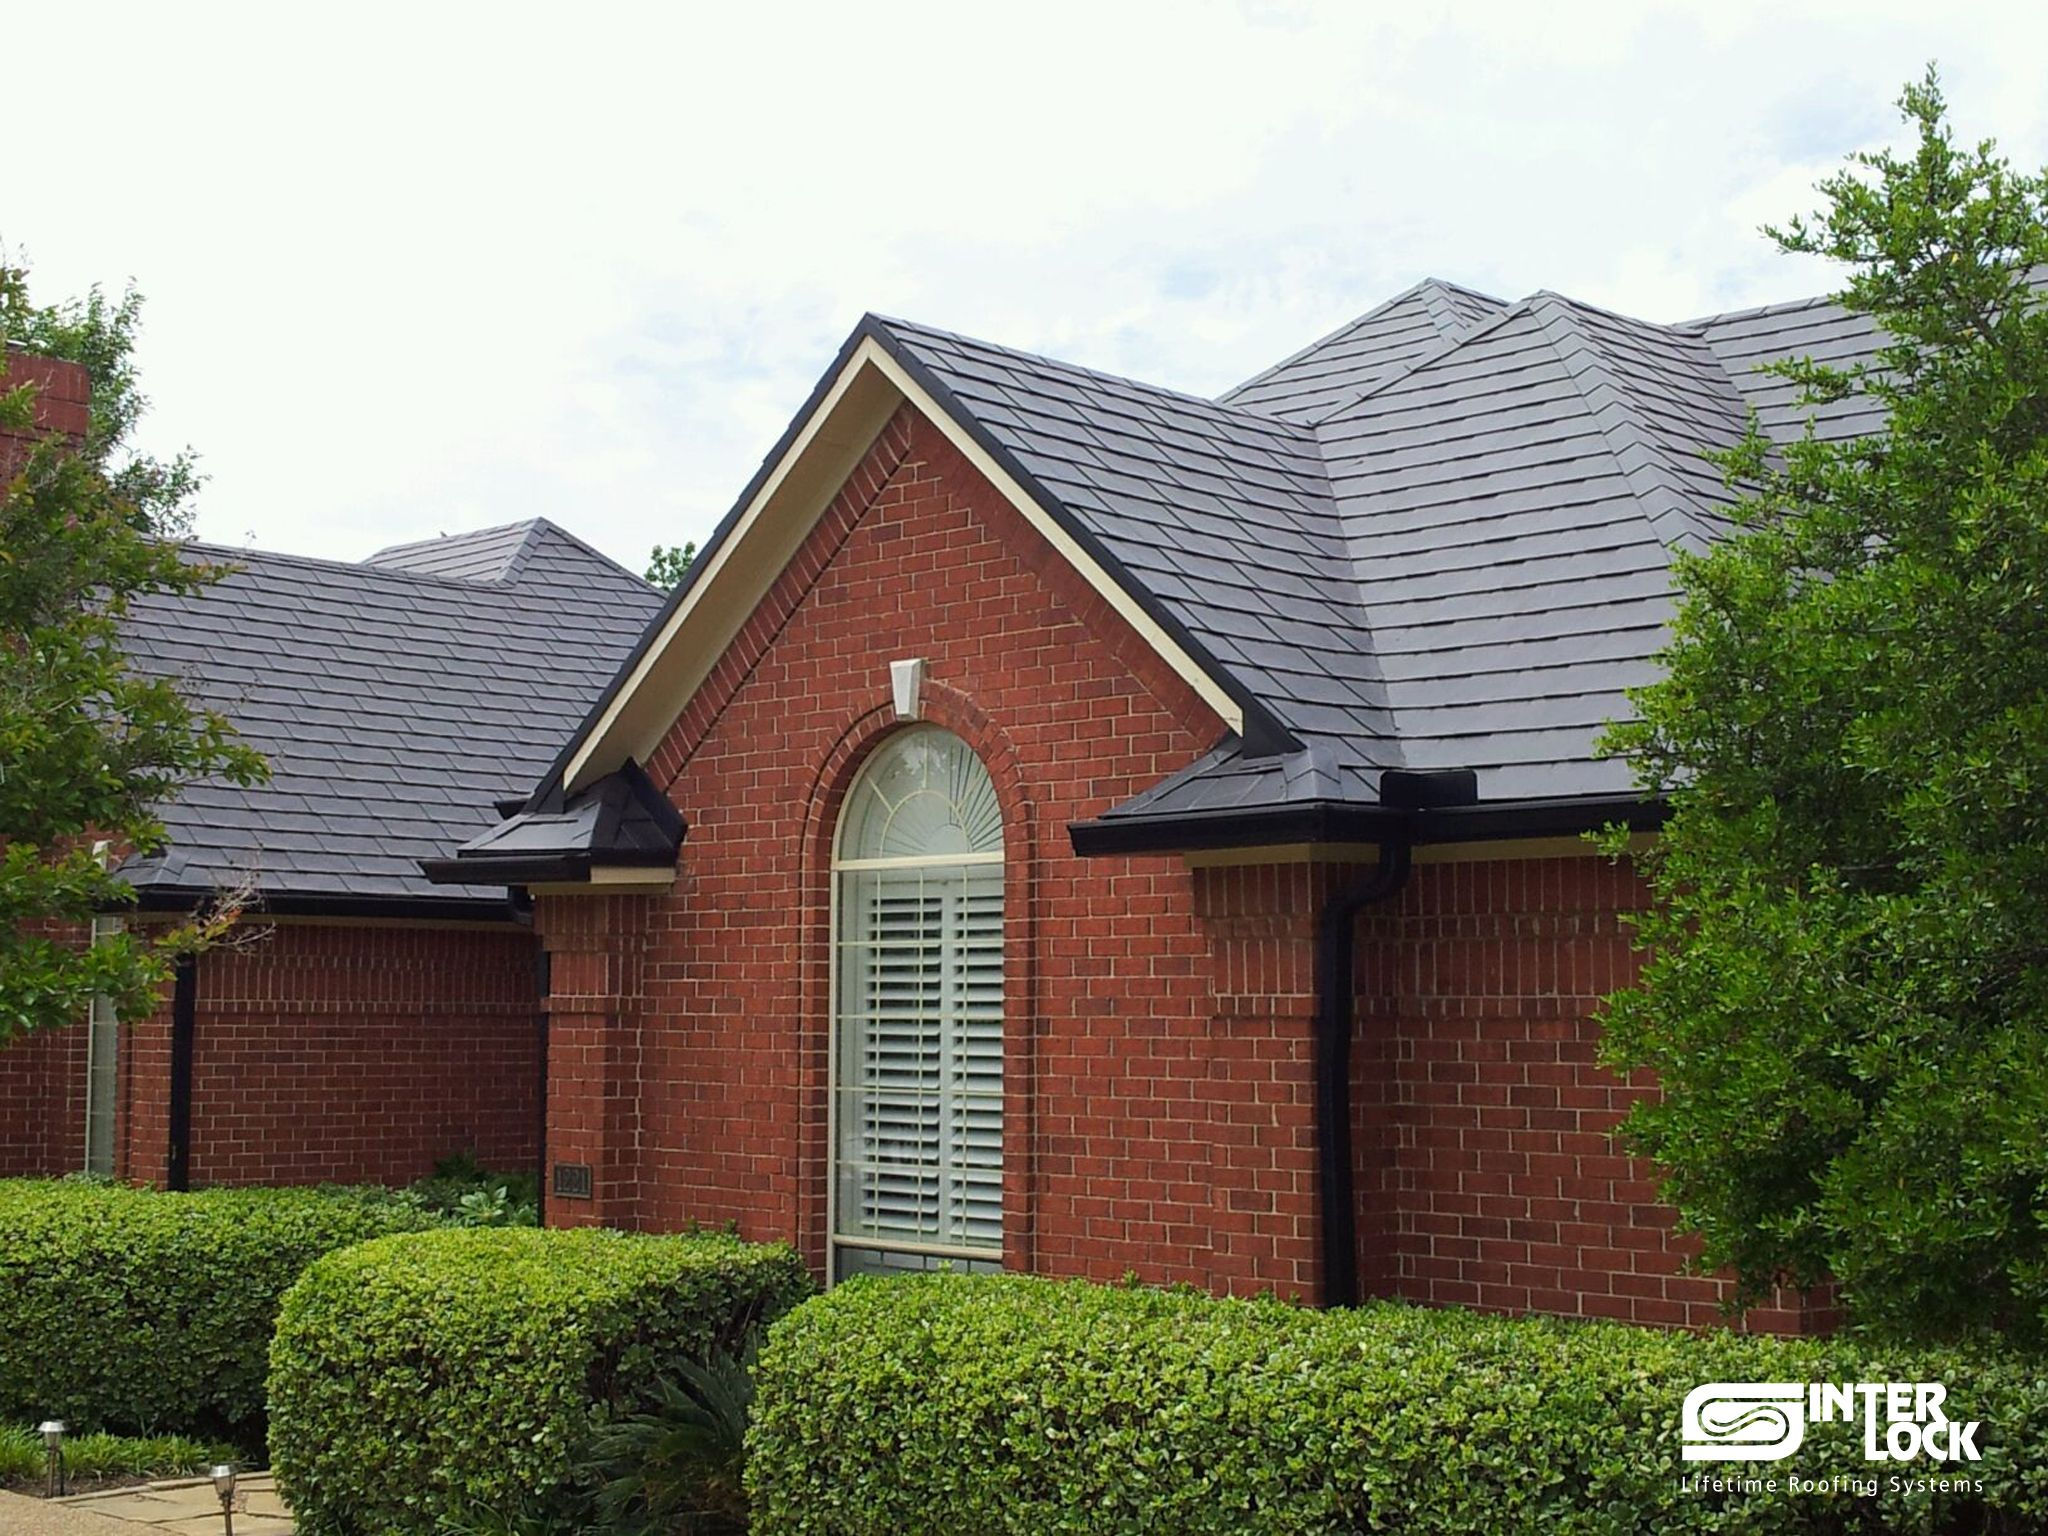 Best Charcoal Grey Interlock® Slate Roof From Dallas Texas Installation By Metal Roofs Of Texas 400 x 300